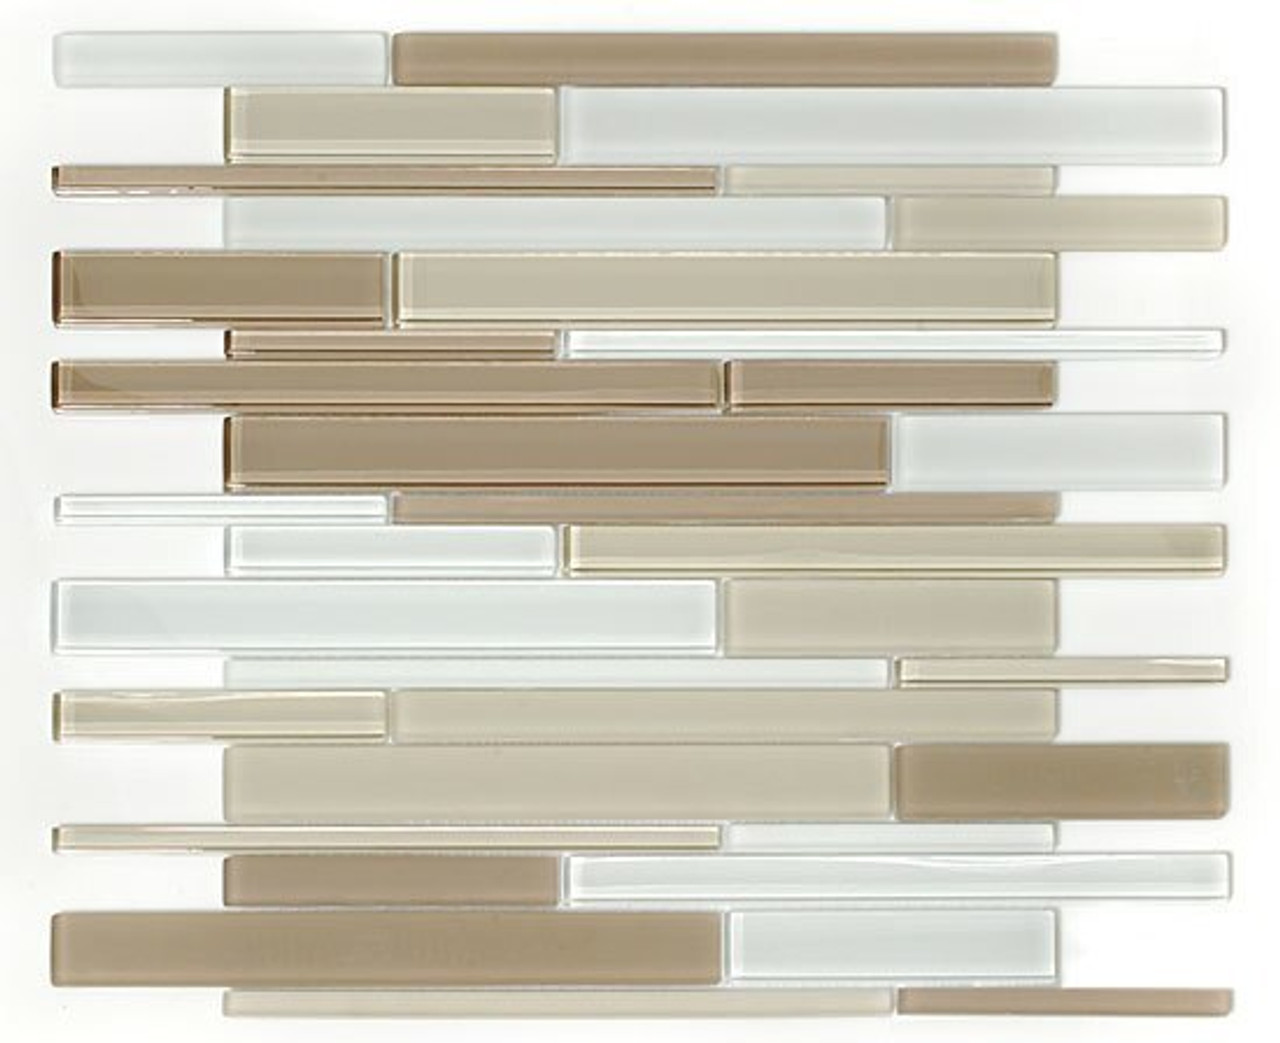 Bella Glass Tiles Cane Series Blend Glass Tiles CNB34 Marble Canyon